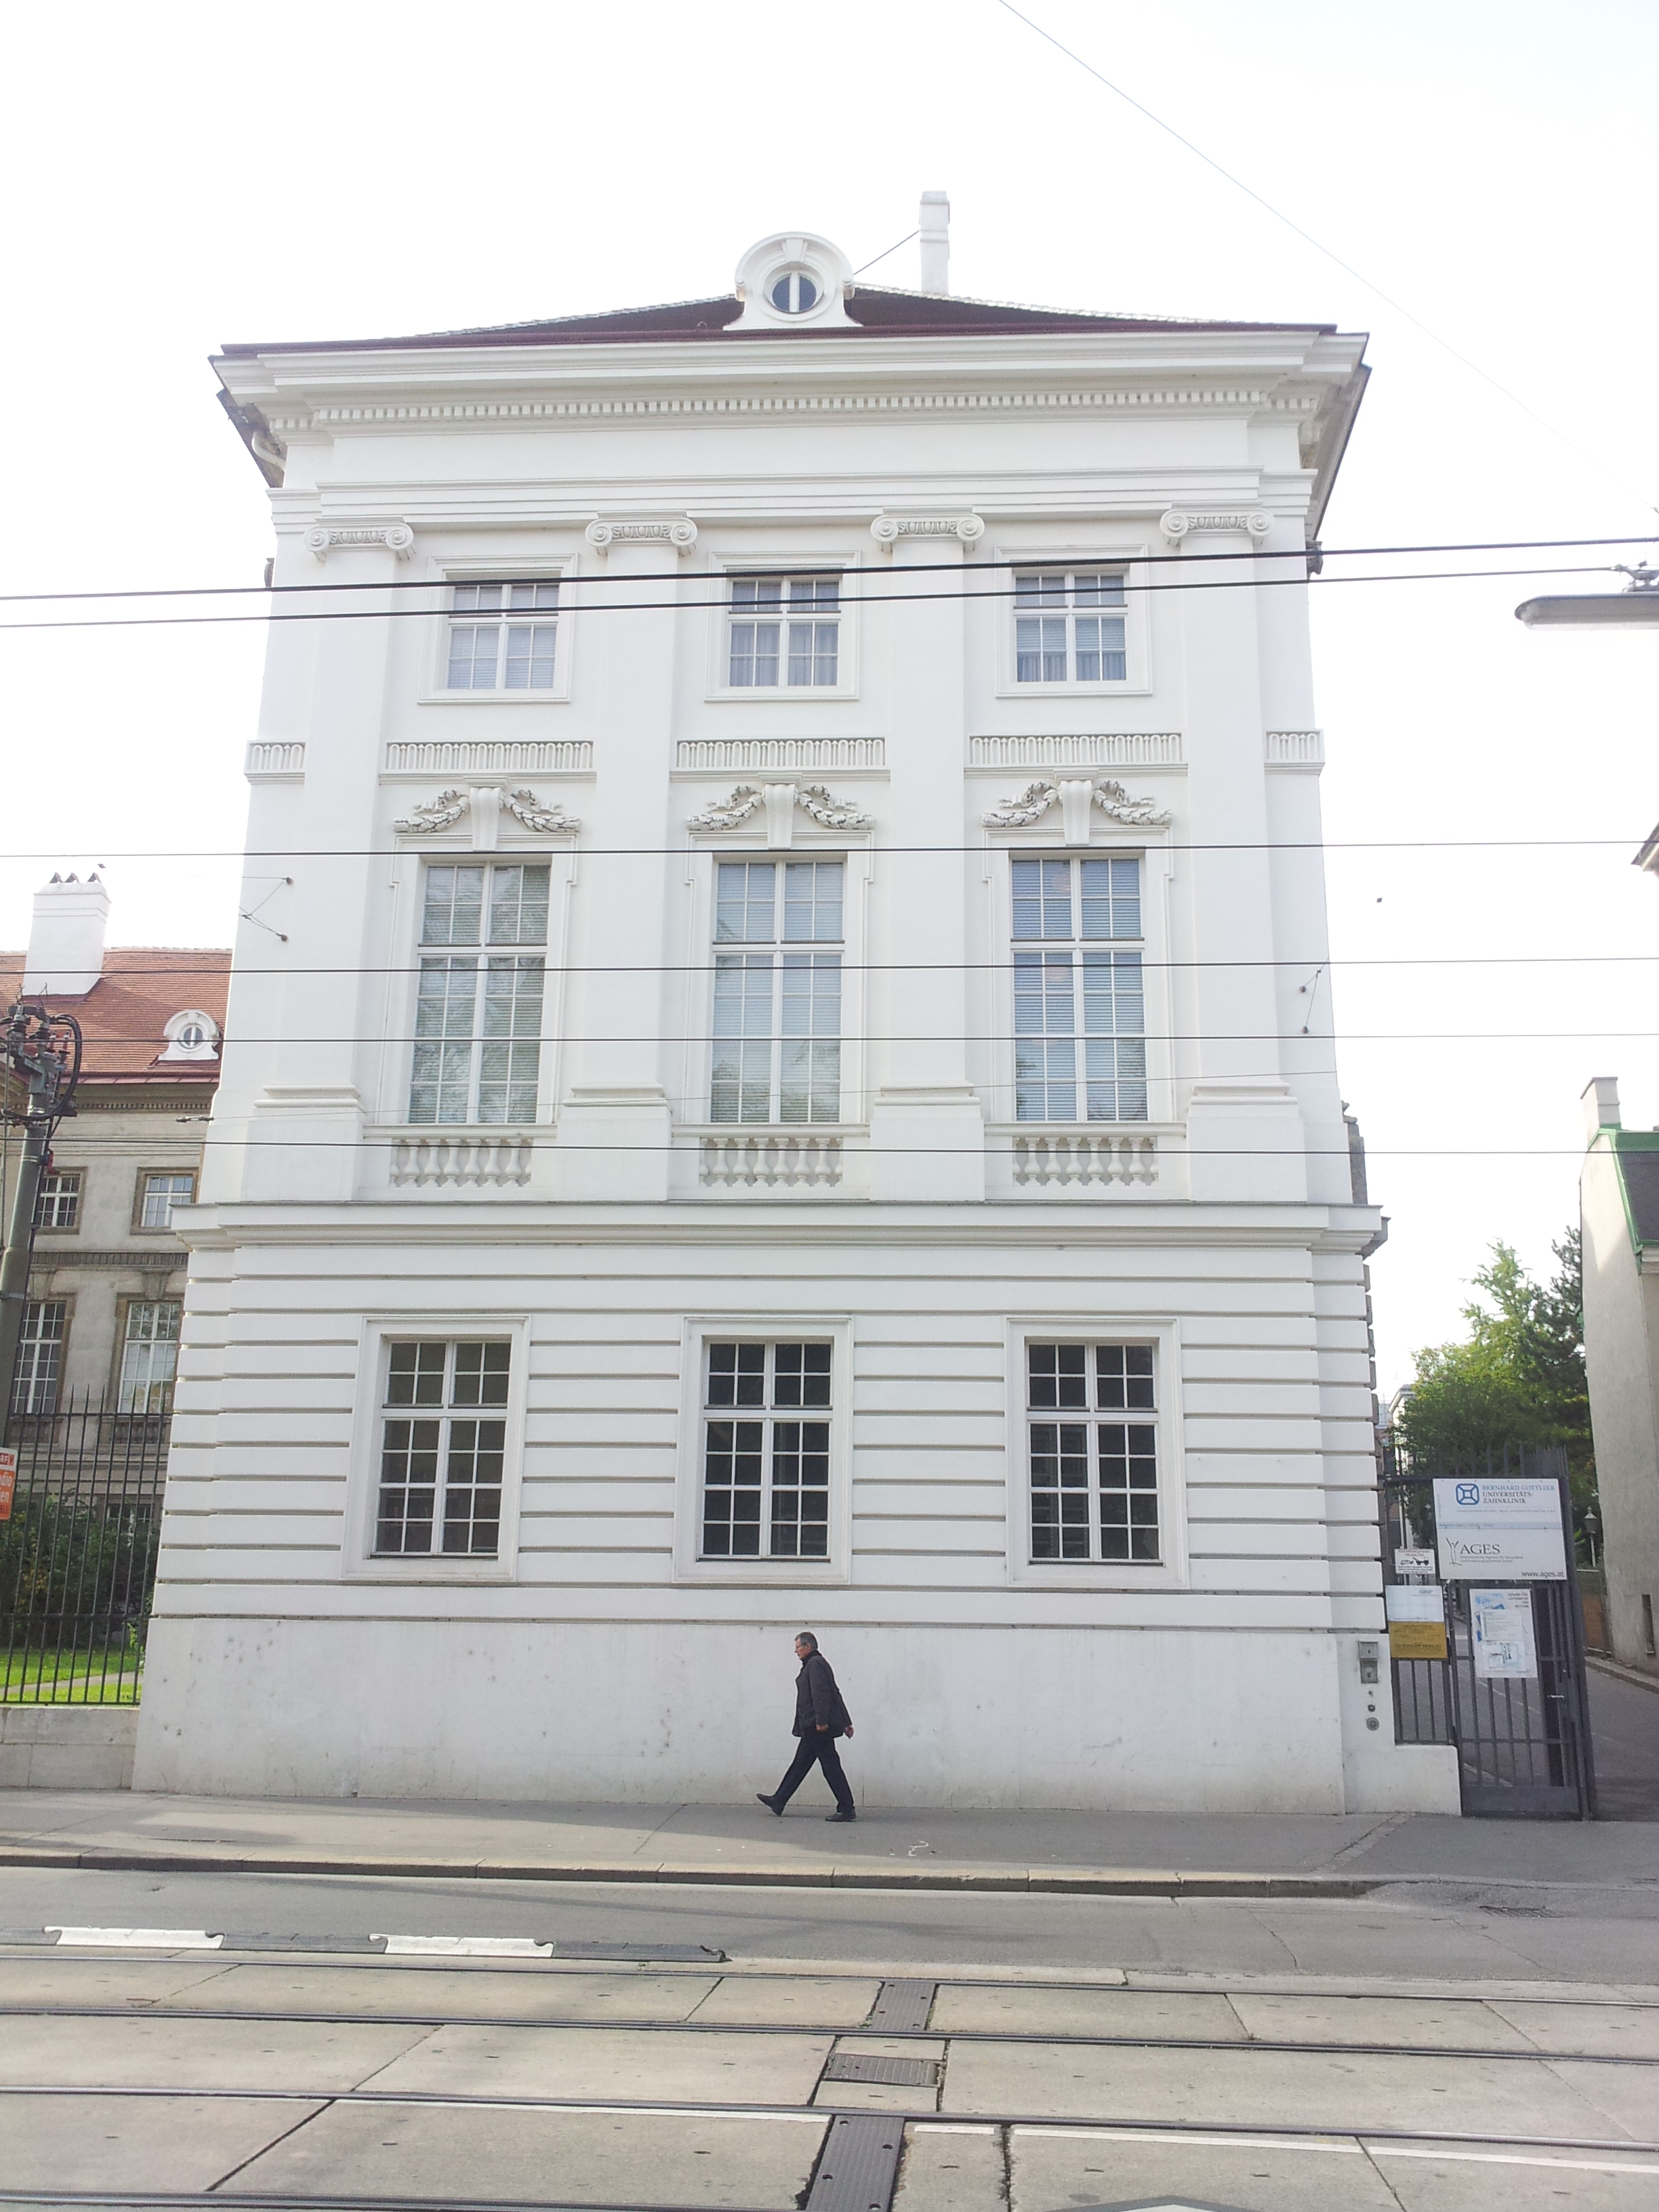 File:White building on white background, plus pedestrian.jpg ...